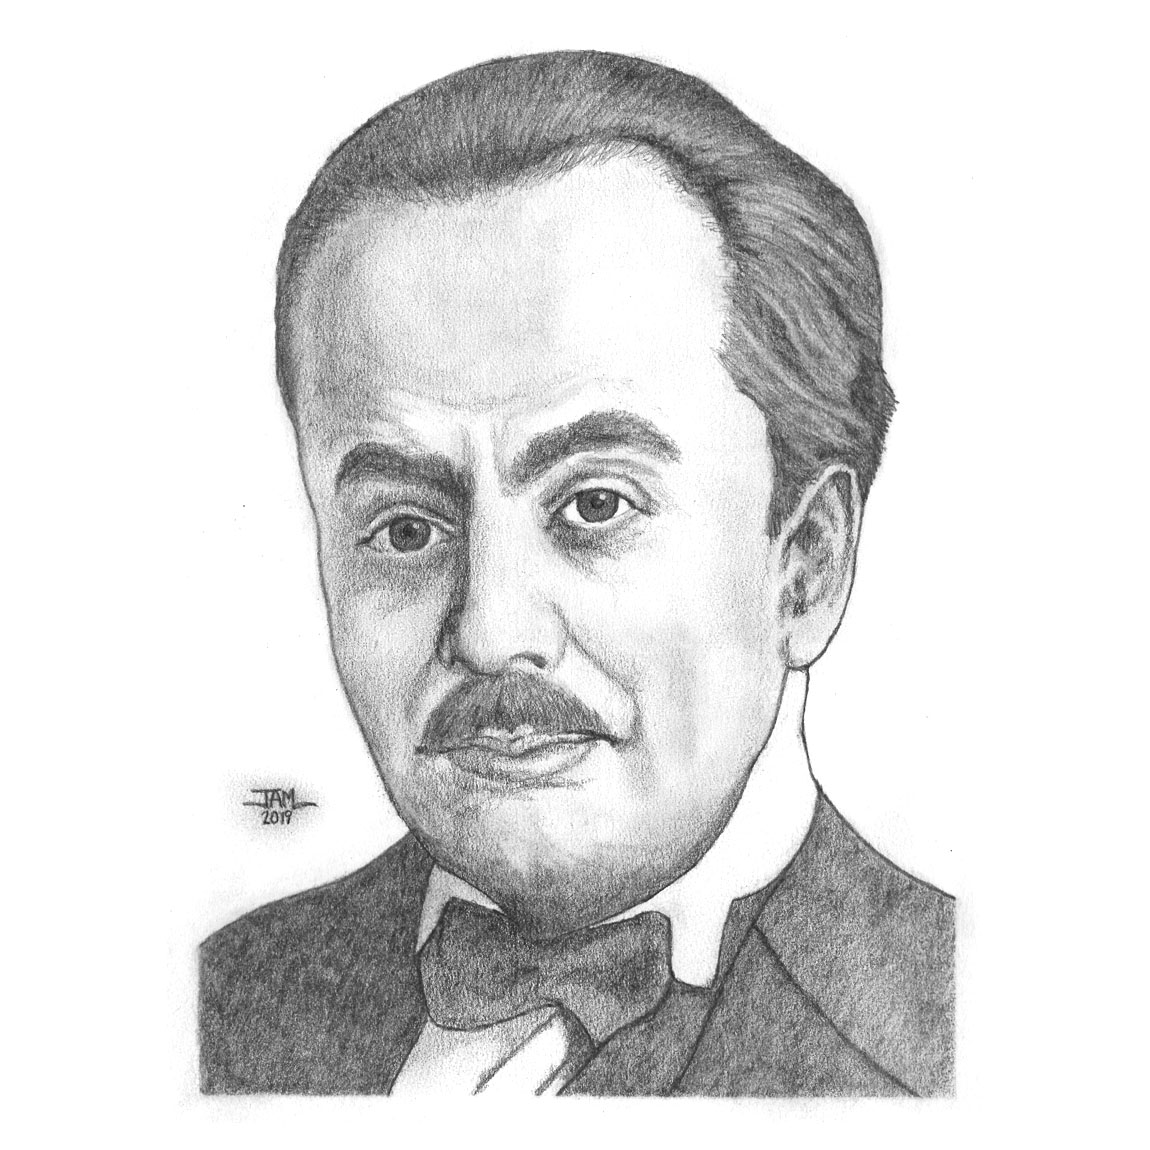 Pencil drawings & sketches of poet Khalil Gibran